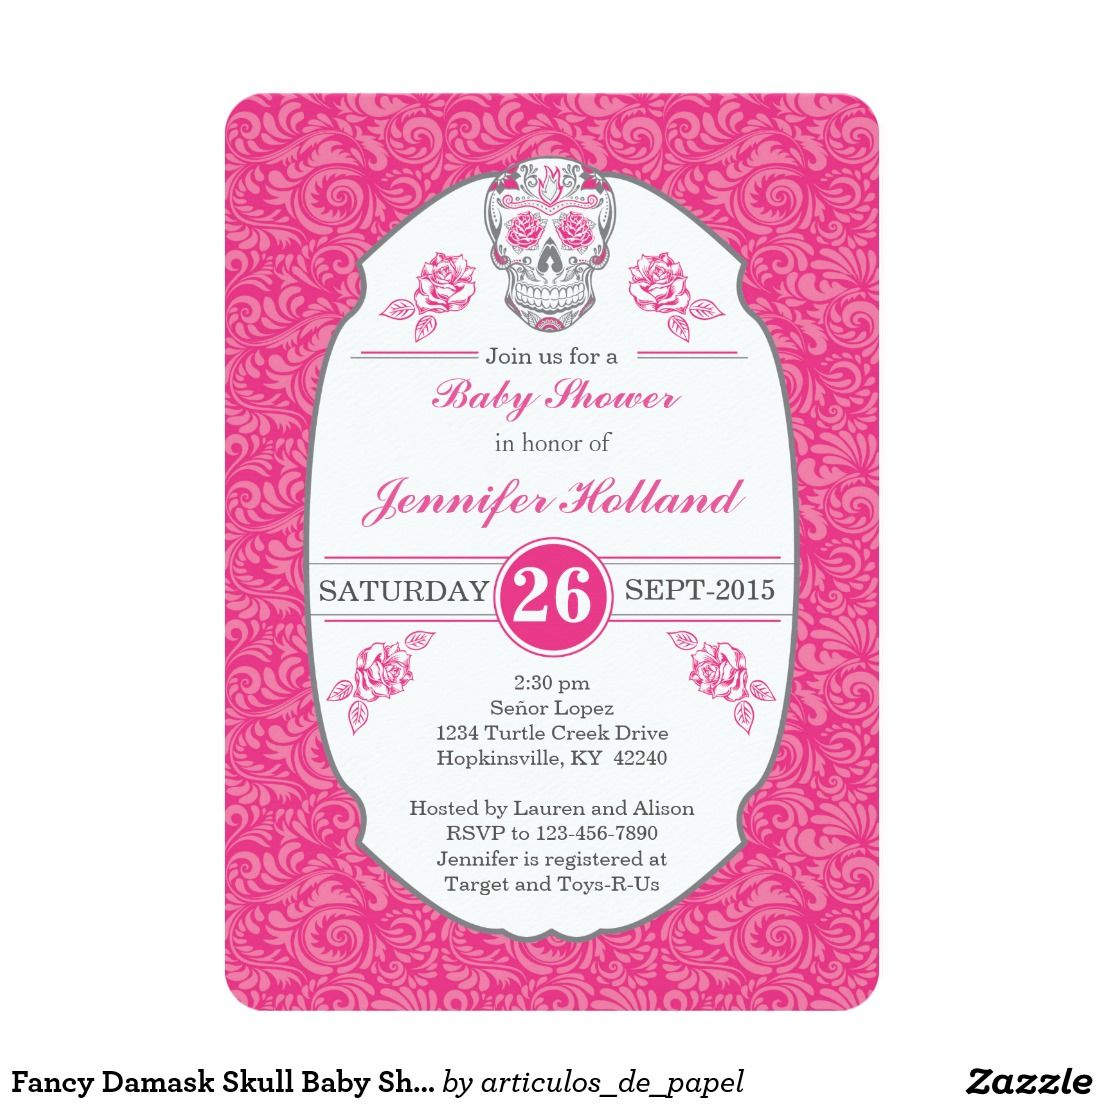 Fancy Damask Skull Baby Shower Invitation in Pink - Day of the Dead ...